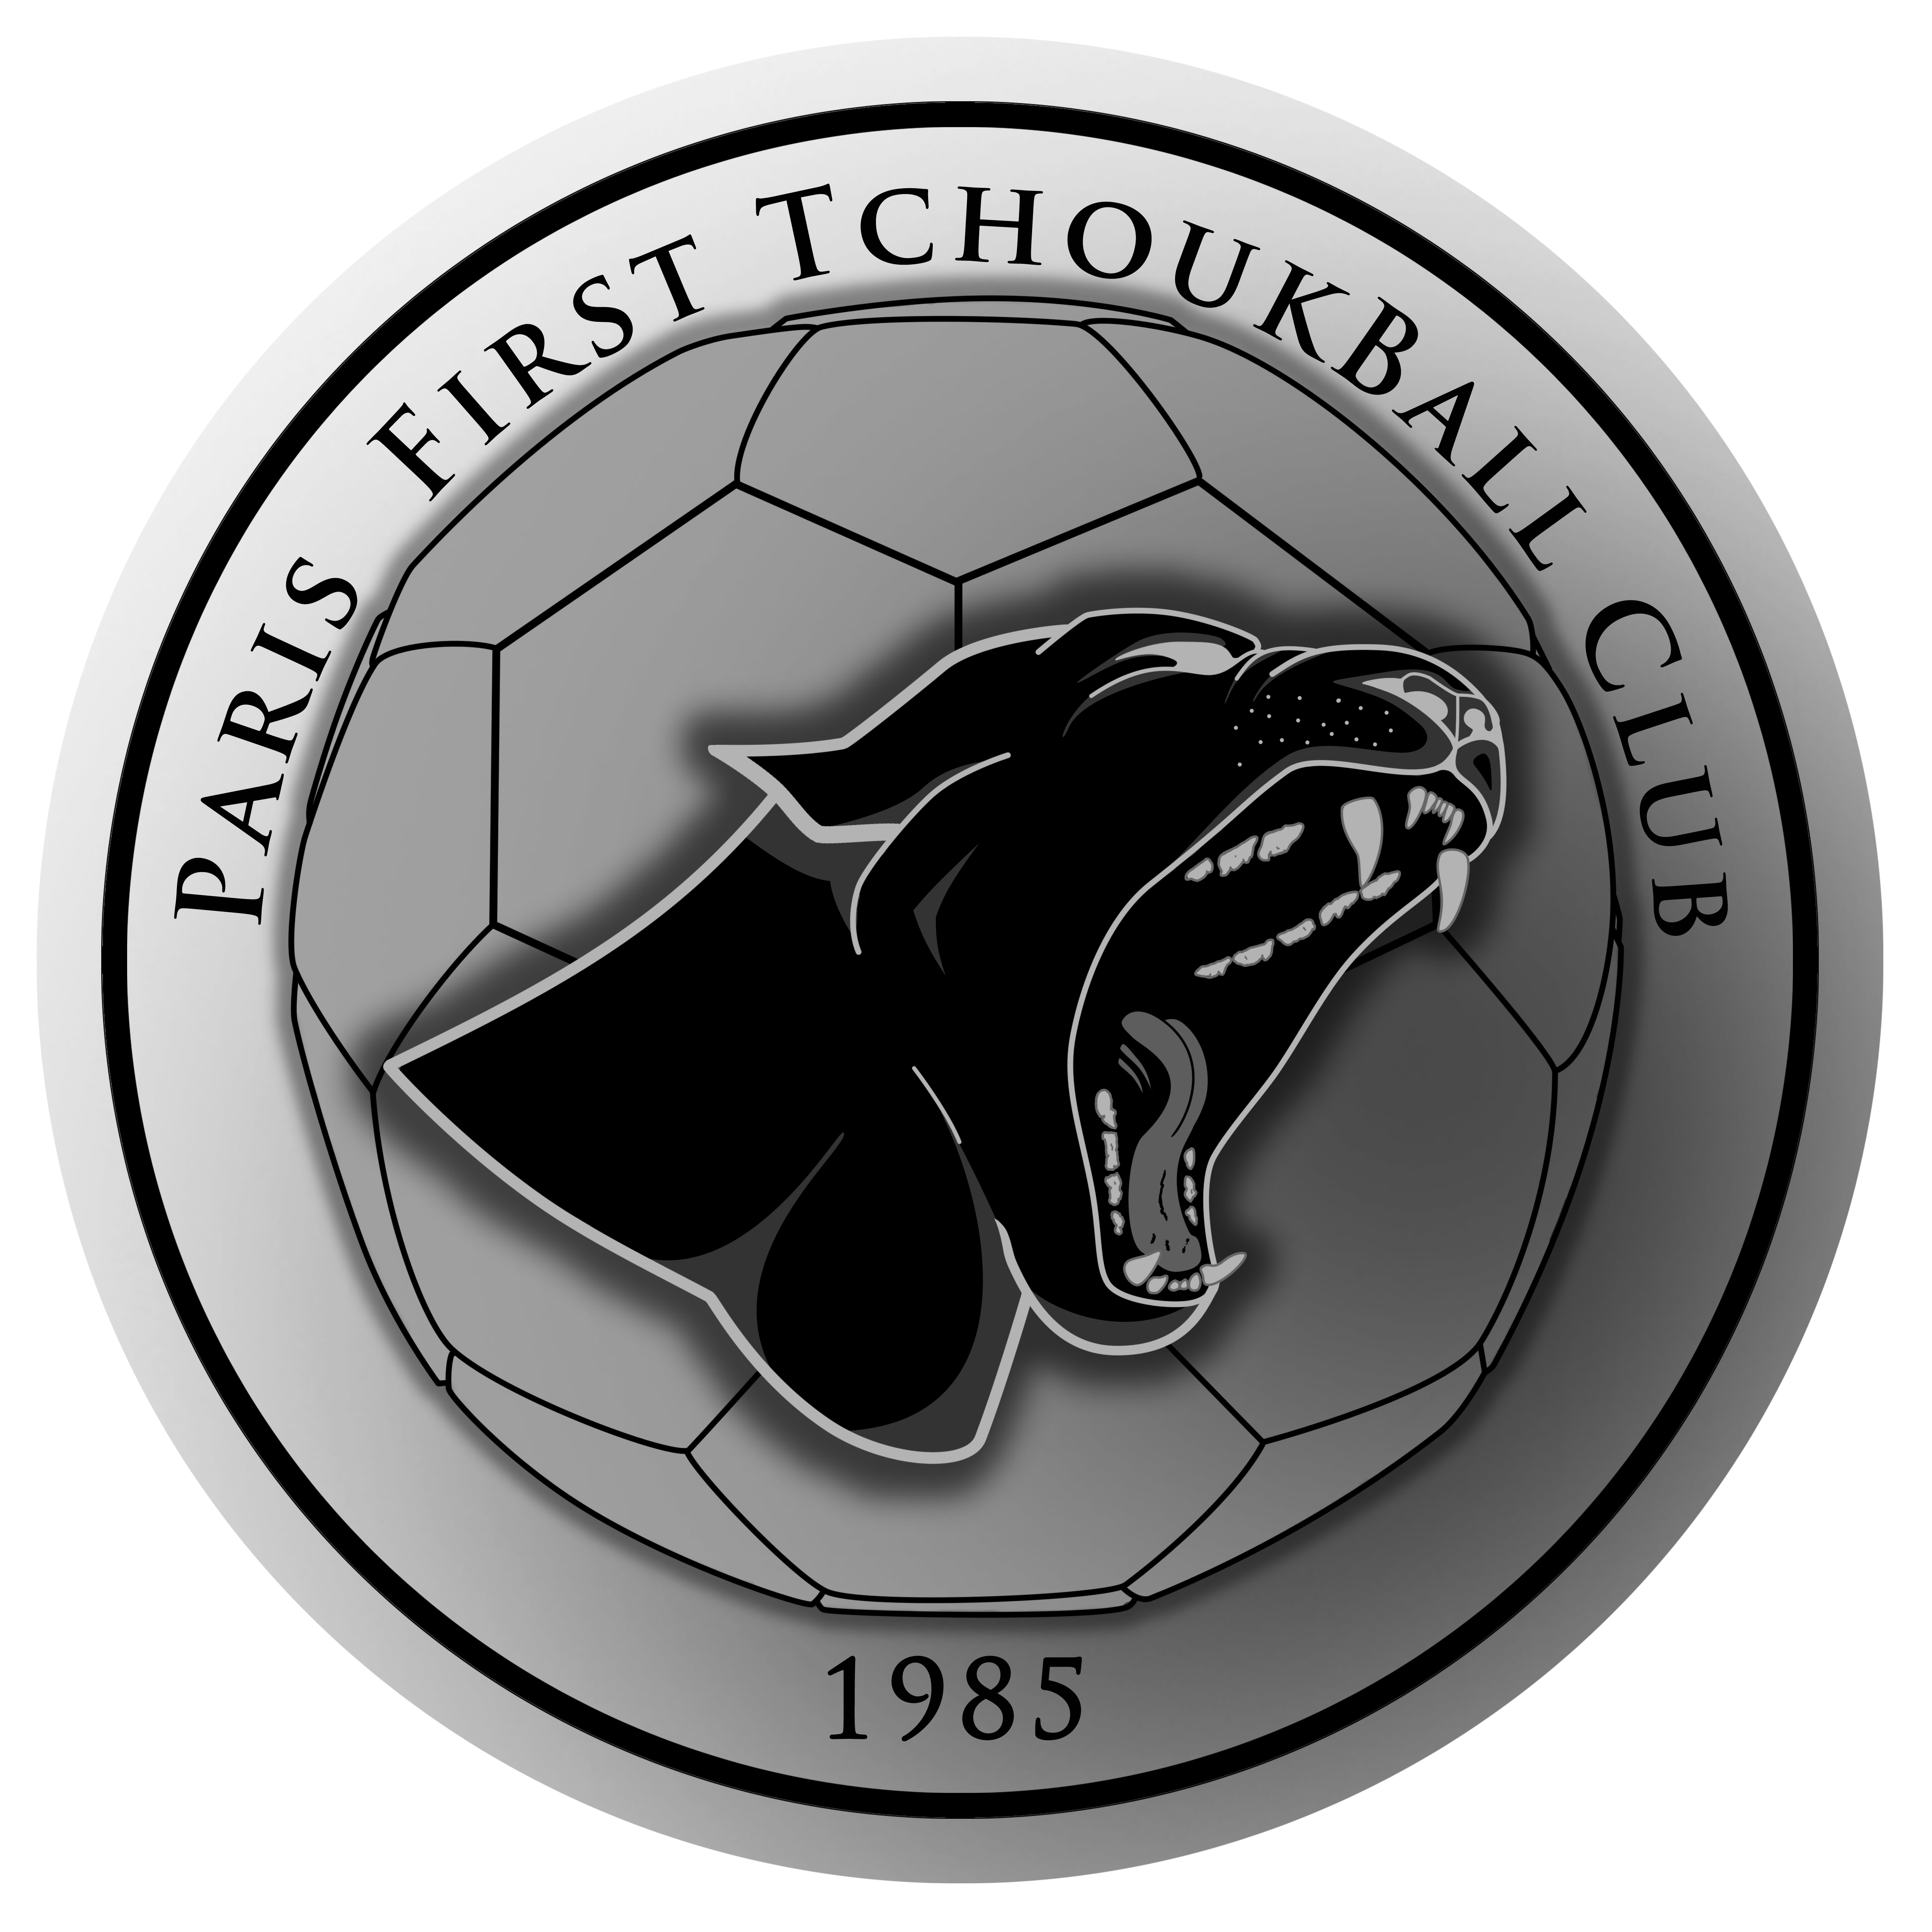 PFTBC - Paris First Tchoukball Club